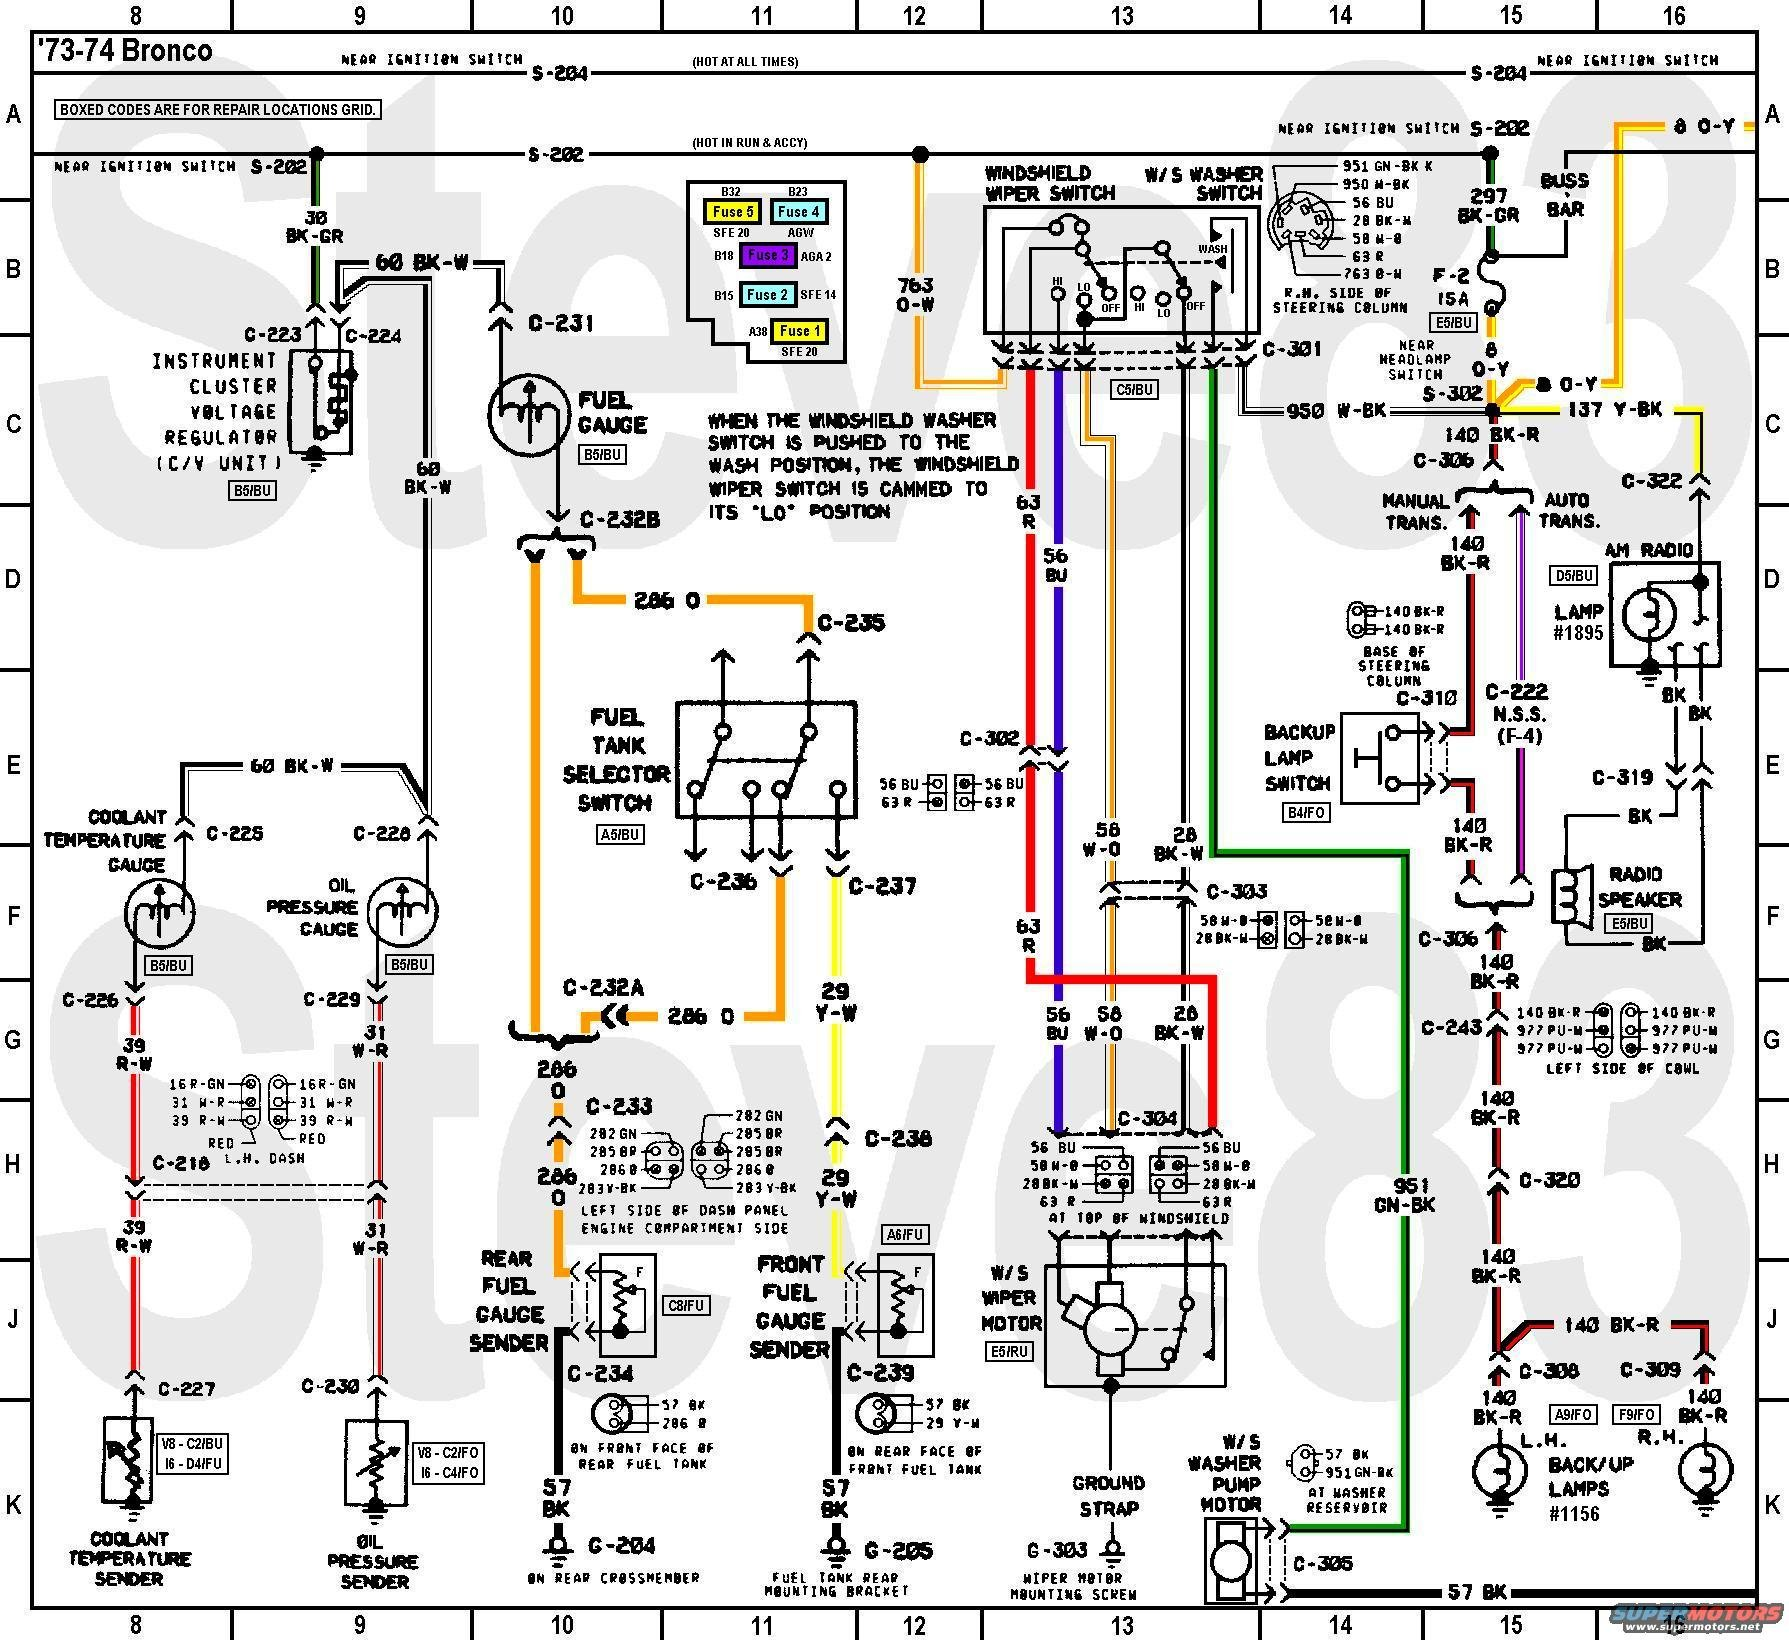 radio wiring diagram mitsubishi outlander wiring library Chevrolet Volt Wiring Diagram th?id\u003doip 0auwjcsg9au8uq__v_igmgefdv\u0026pid\u003d15 1 1990 mitsubishi triton radio 2006 mitsubishi eclipse radio wiring diagram